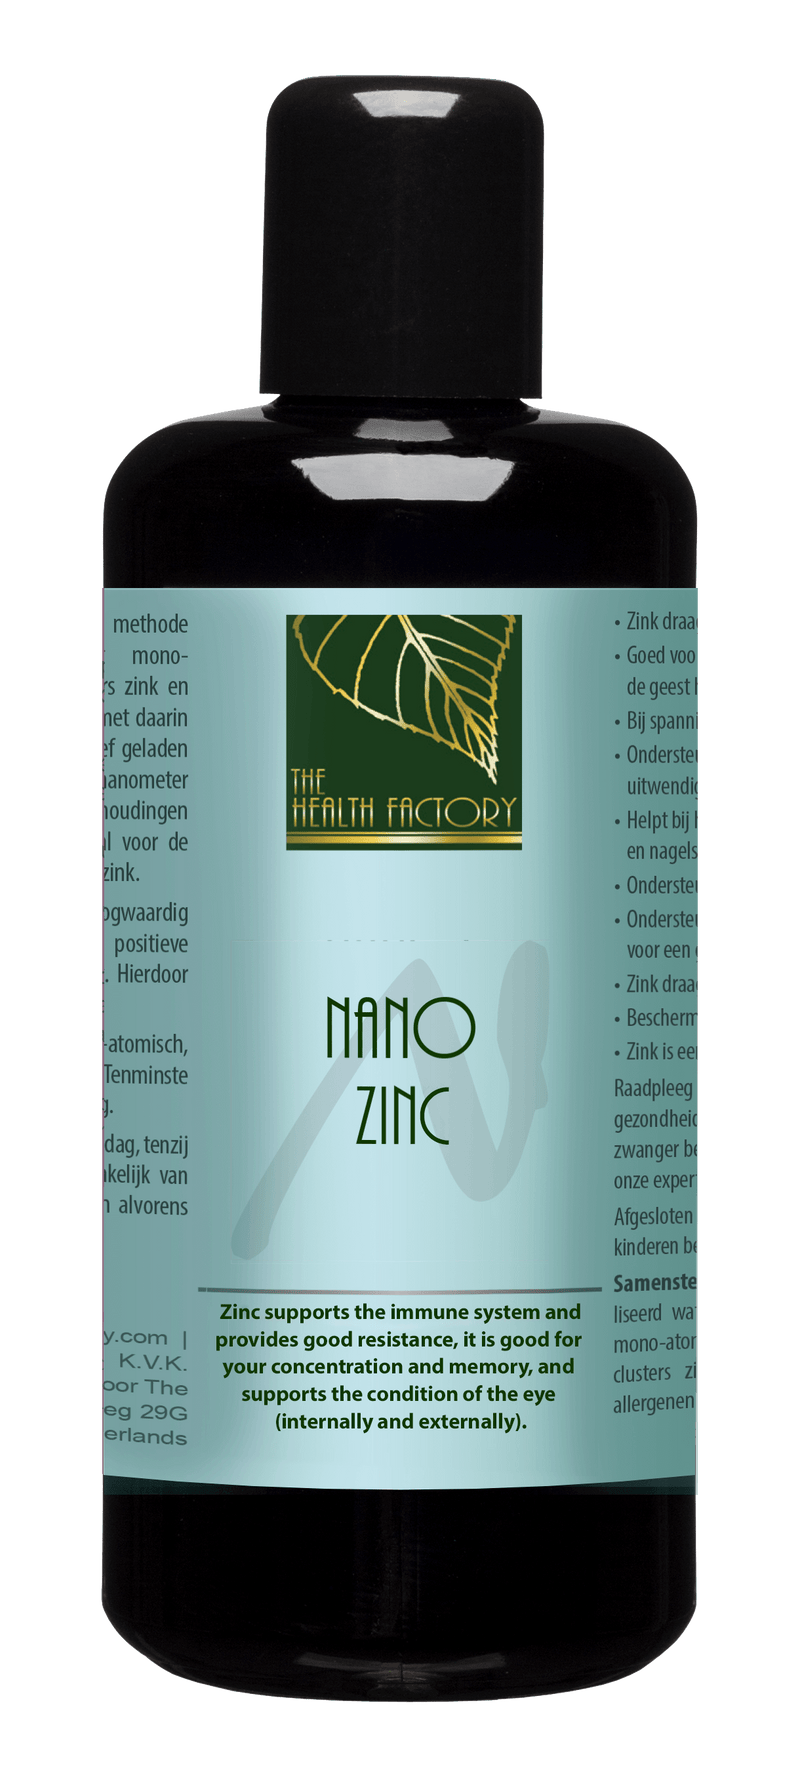 Nano Zinc Purified Mineral Water to Support Strengthening the Immune System, Growth & Skin Repair Internal & External Use